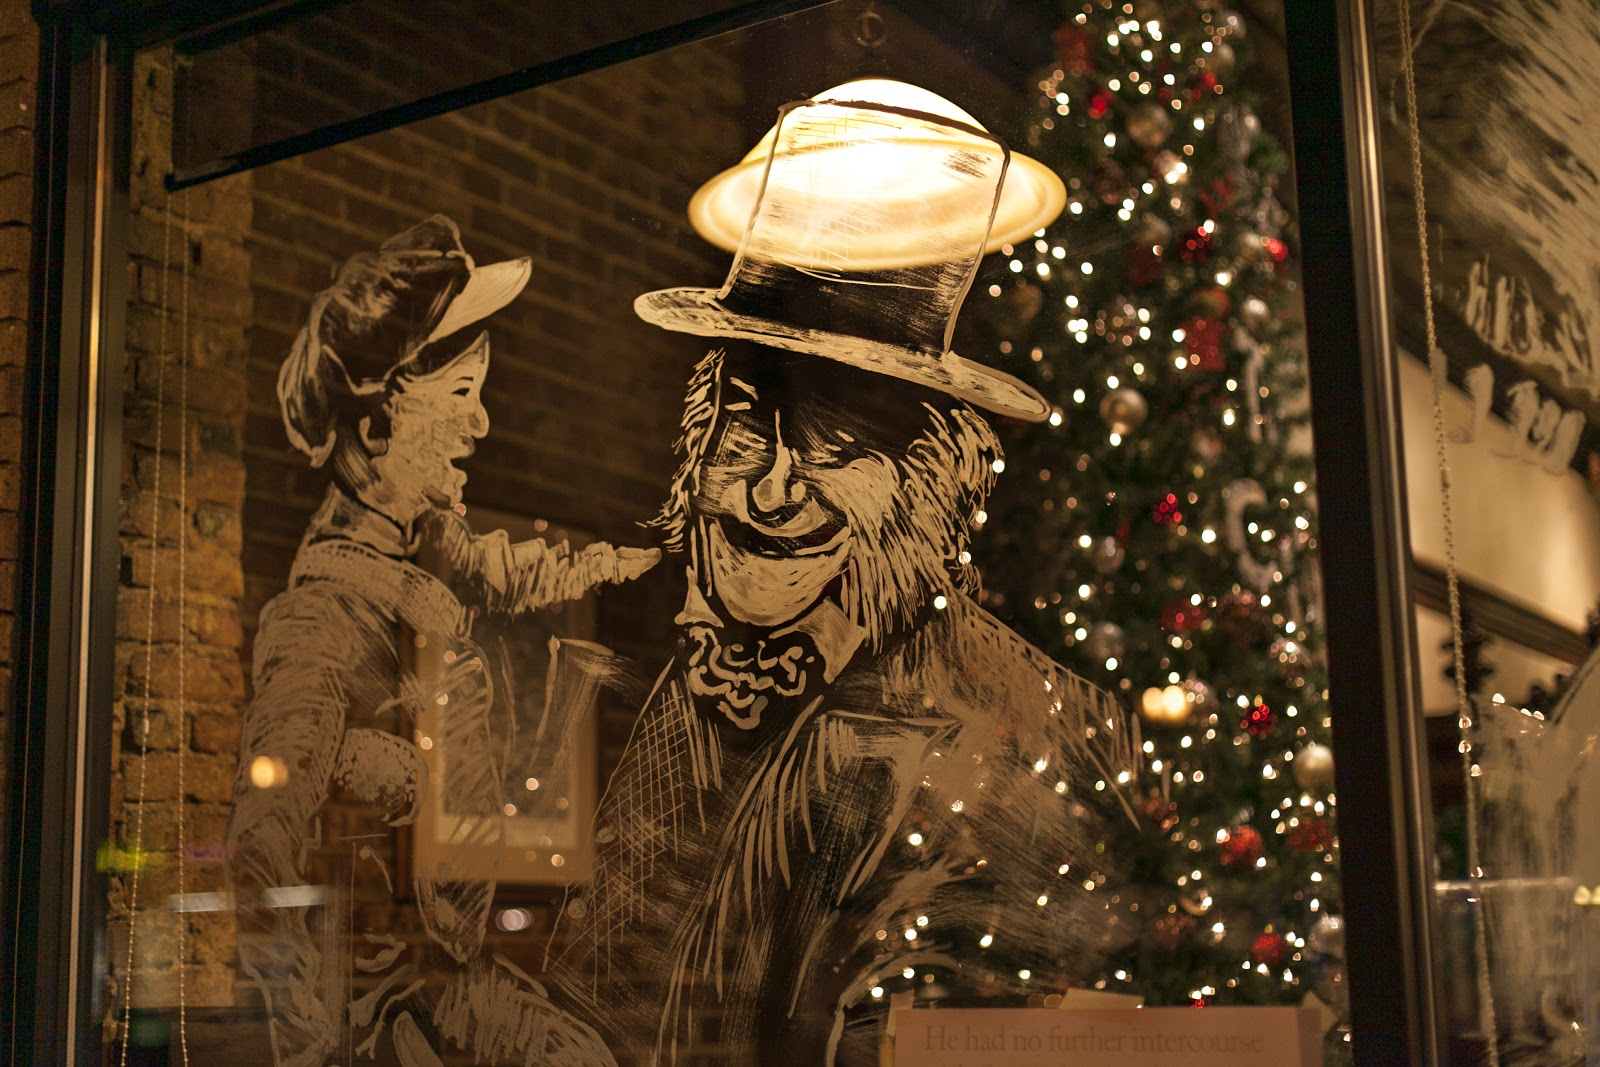 Christmas window painting decorations - Michael Glass Was Still Putting The Final Touches On The Paintings On Wednesday Evening He Said He Has Spent Approximately 5 6 Hours Per Painting From